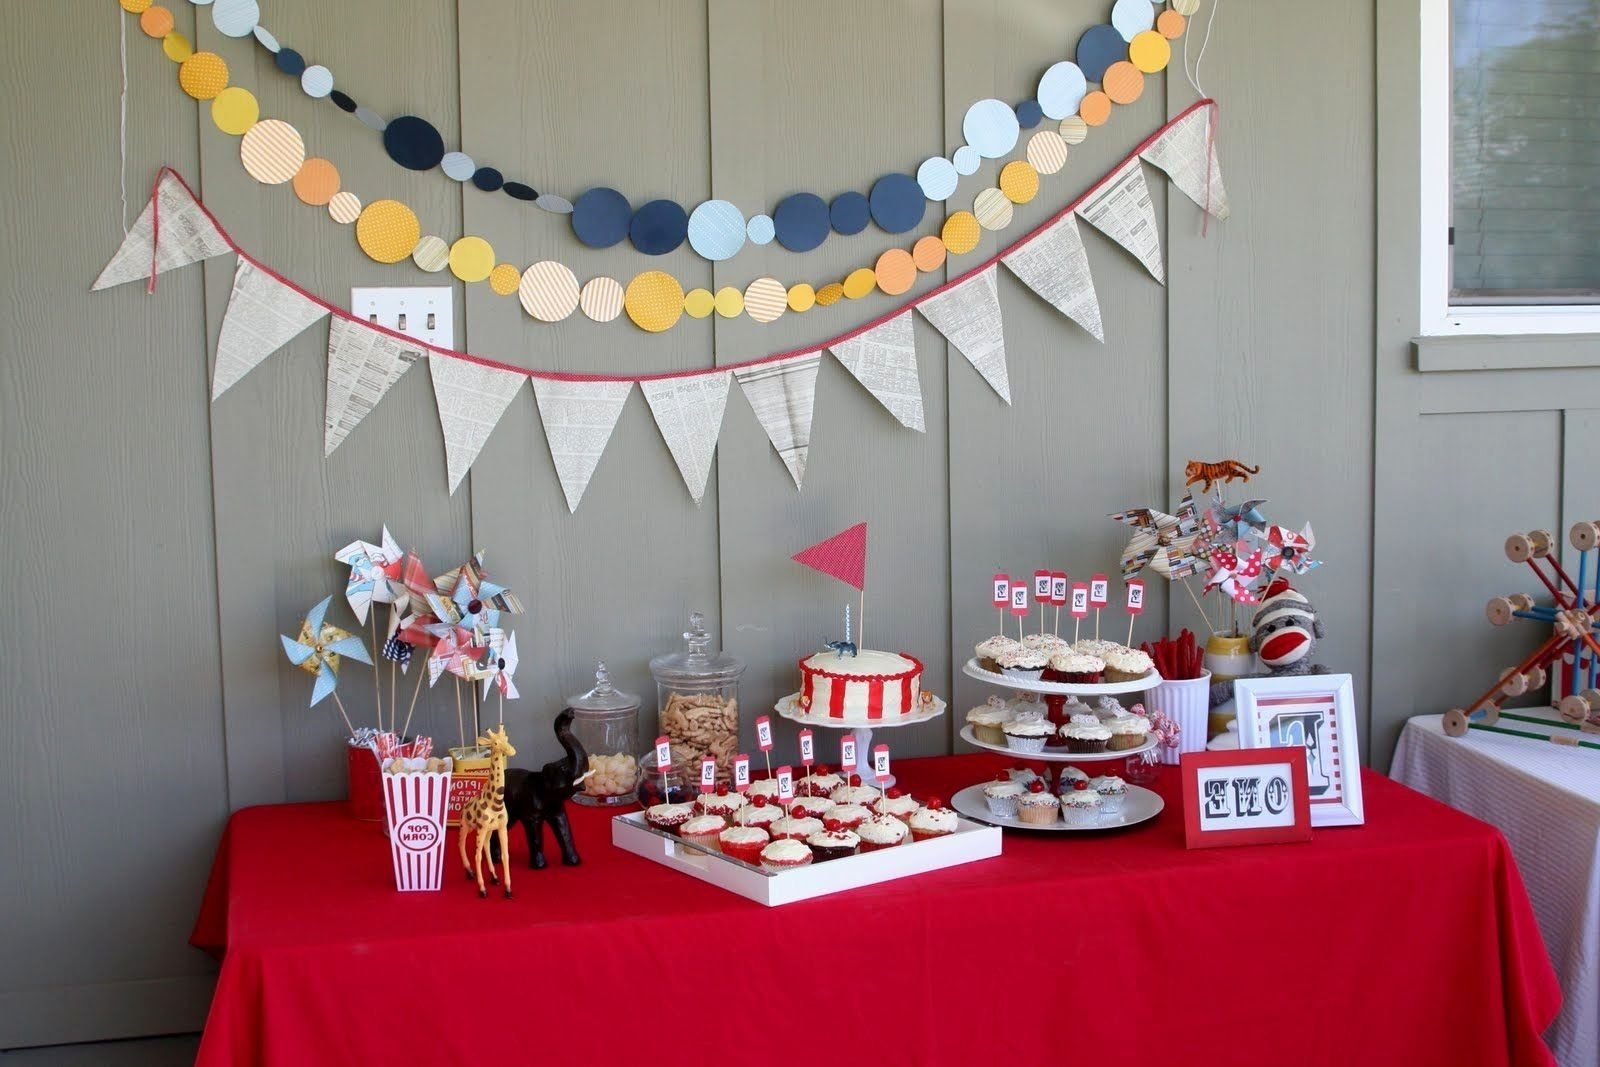 10 Stunning Inexpensive Birthday Party Ideas For Adults quick birthday party decorating ideas decorating of party